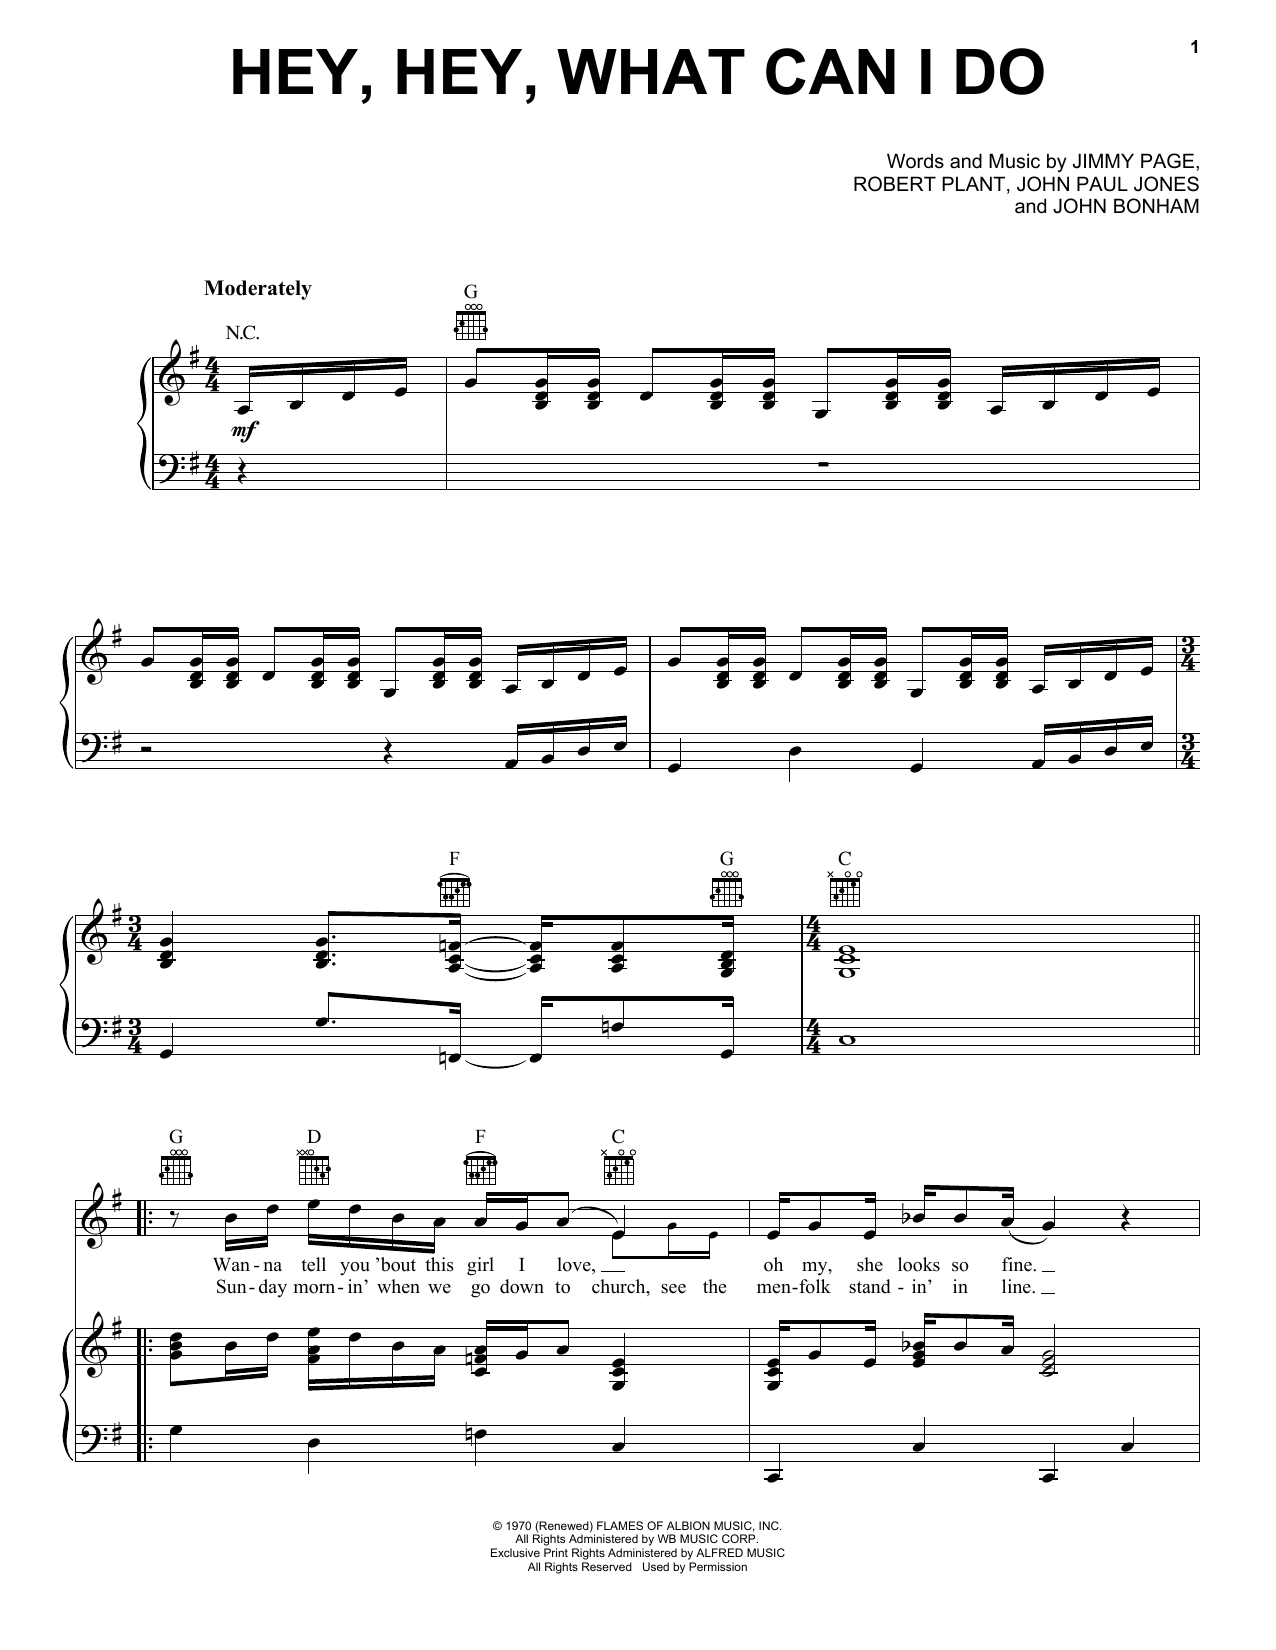 Hootie & The Blowfish 'Hey, Hey, What Can I Do' Sheet Music Notes, Chords    Download Printable Piano, Vocal & Guitar Right Hand Melody   SKU 15